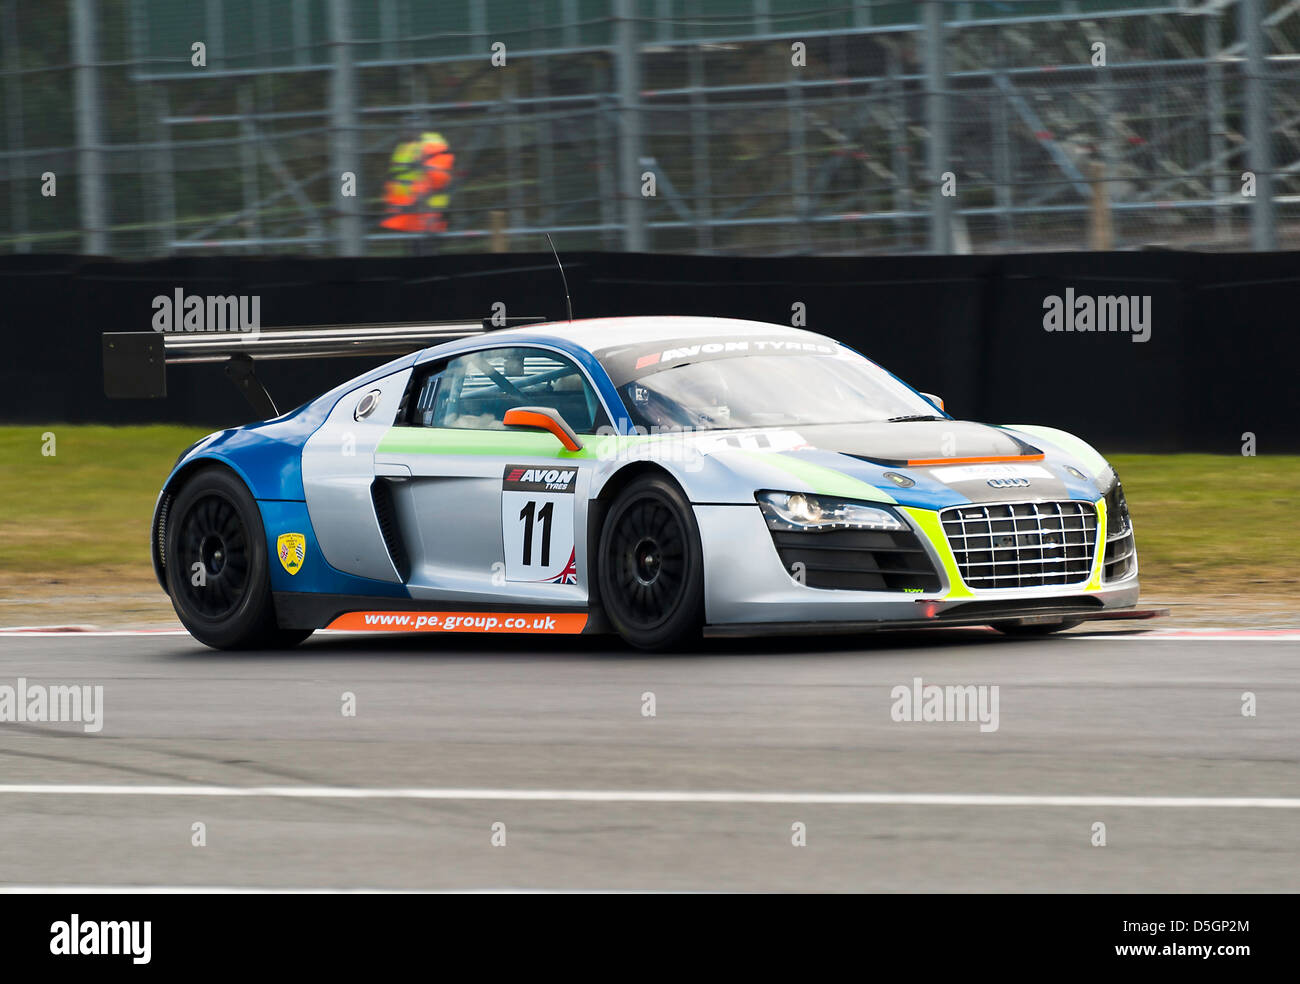 Audi R8 LMS Sports Racing Car In British GT Championship At Oulton Park  Motor Racing Circuit Cheshire England United Kingdom UK